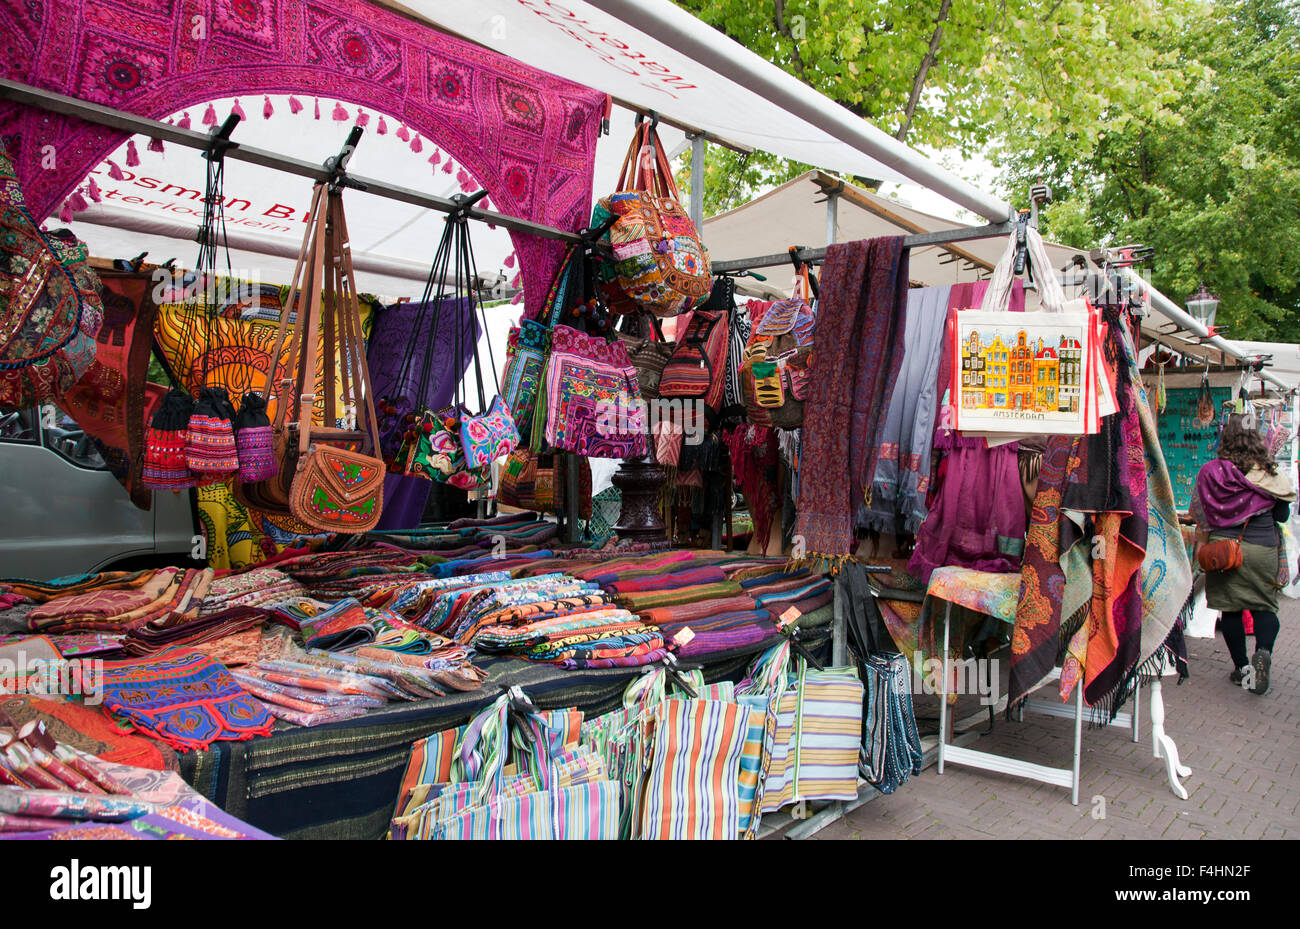 Wildly colorful textiles tempt shoppers at the Waterlooplein flea market in the center of Amsterdam. - Stock Image